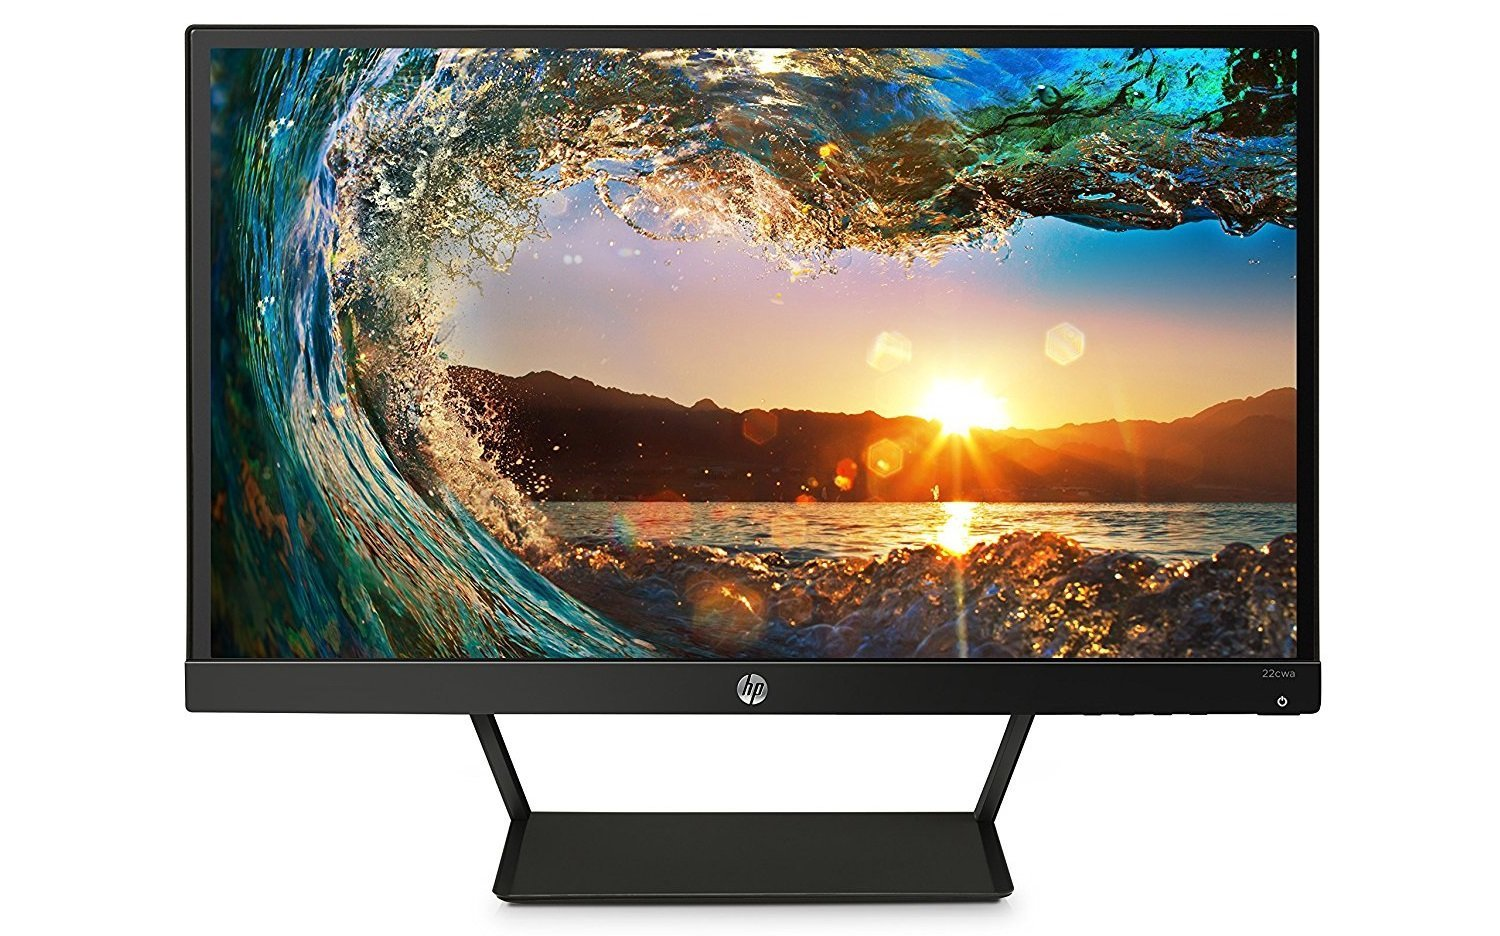 Image of a HP PC display for less than 100 dollars